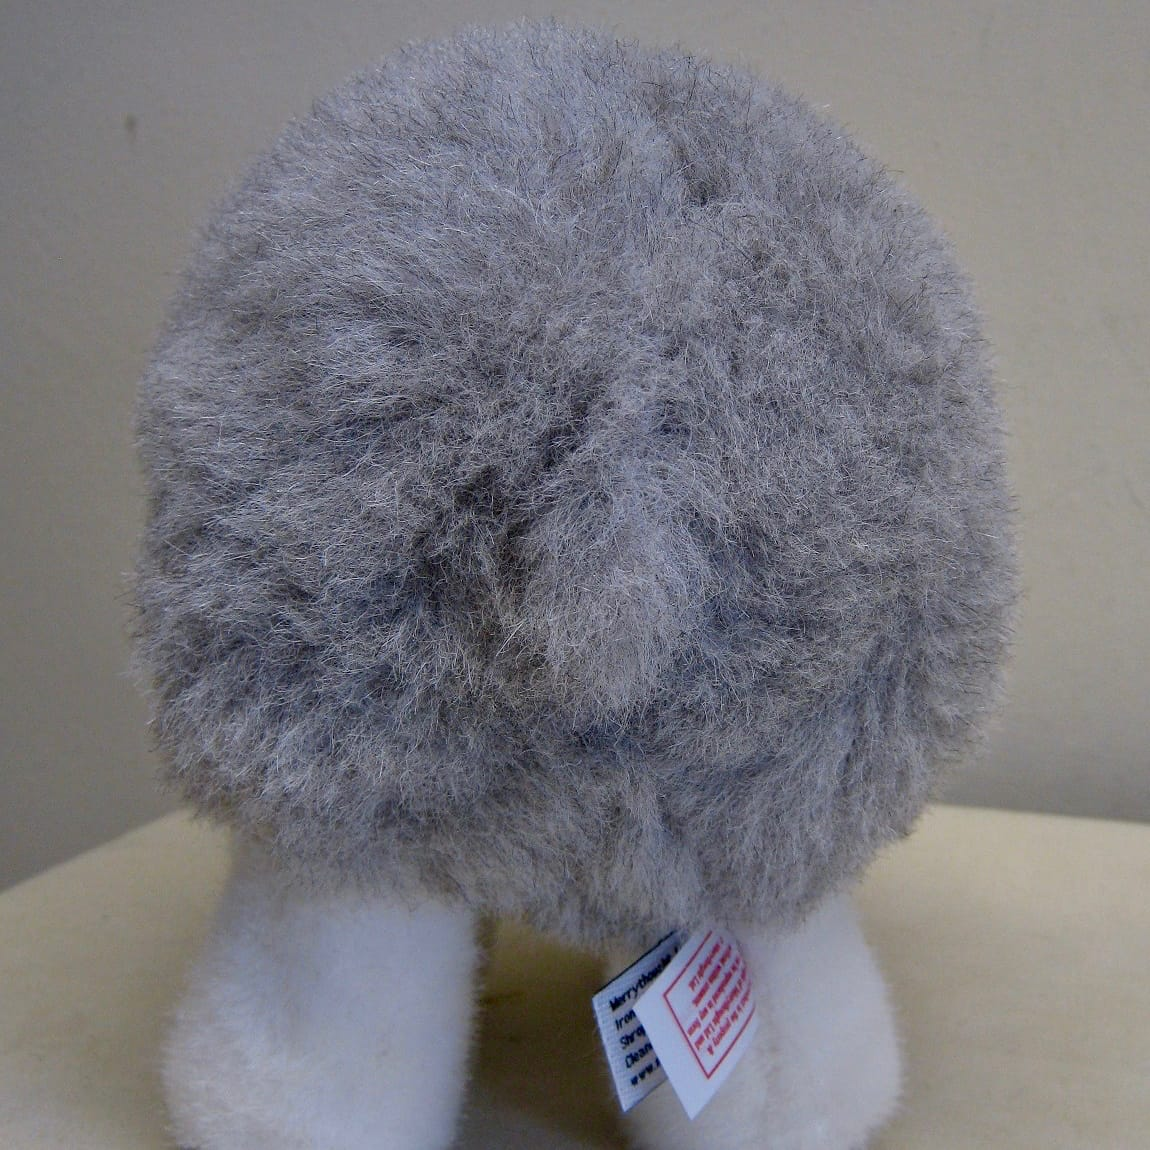 Bigger prototype of the original My Herdy, back view